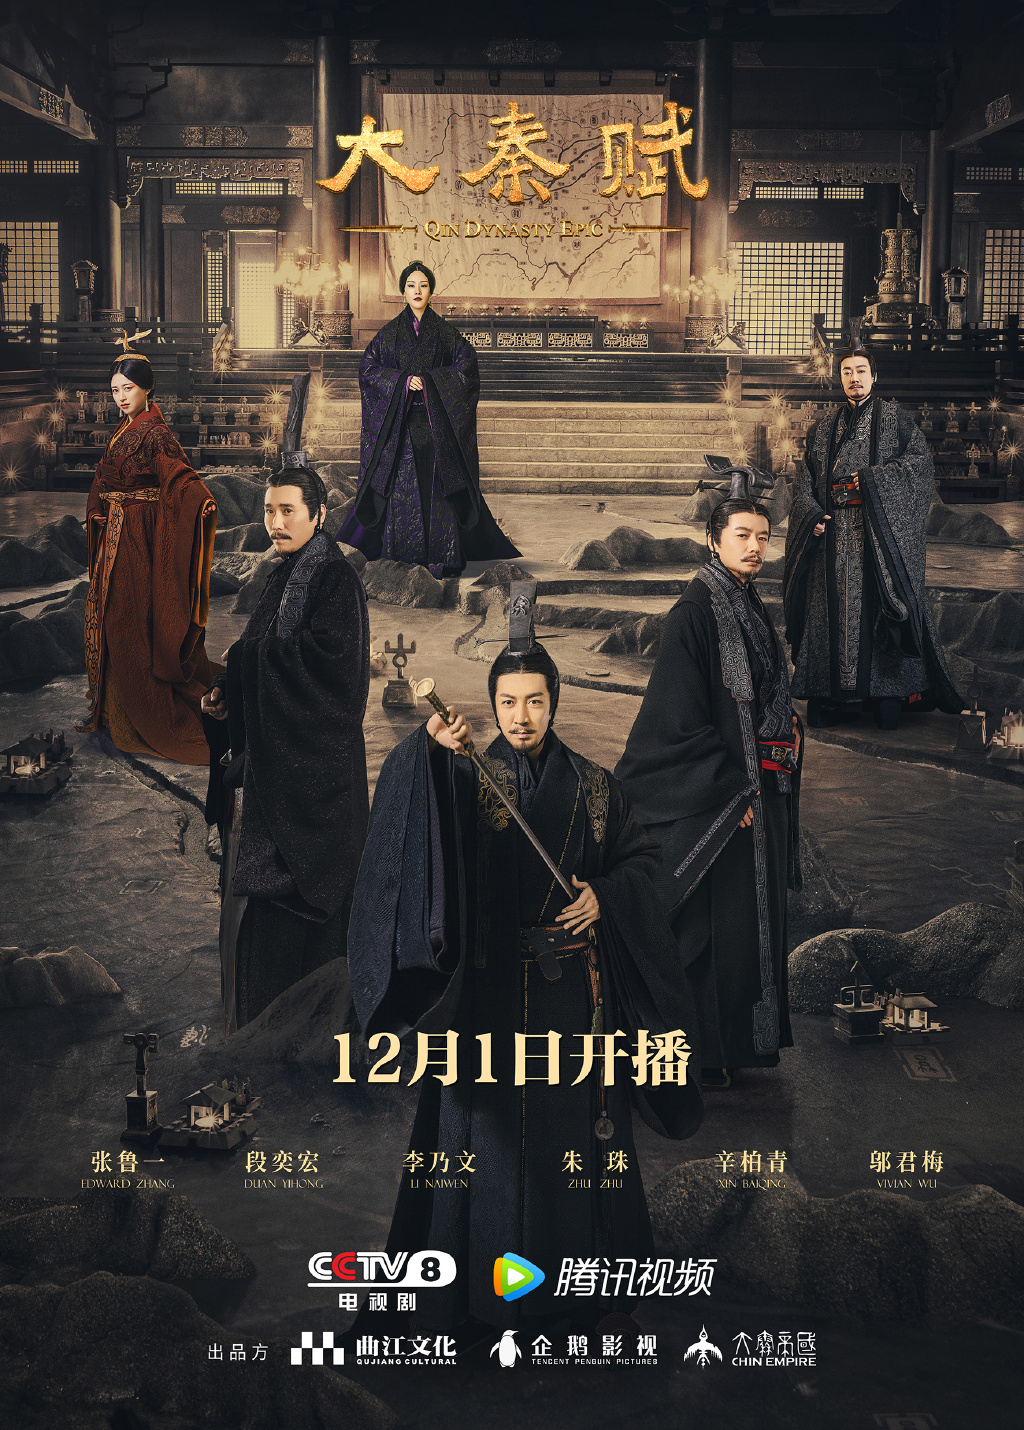 Qin Dynasty Epic Chinese Drama Poster